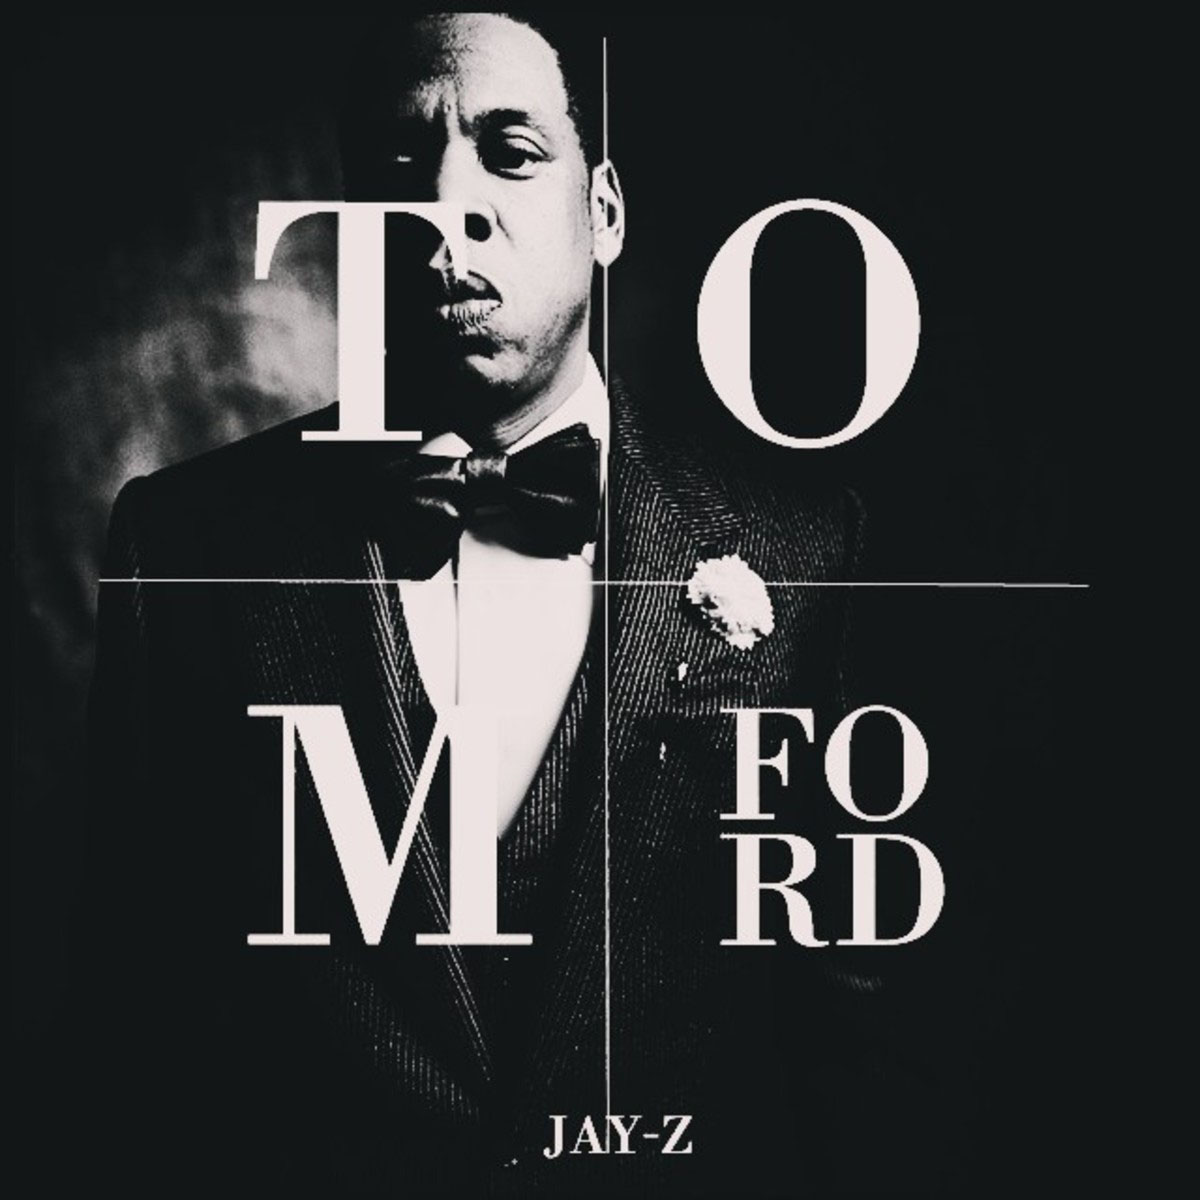 The best of jay z timbaland songs of all time timbaland page 2 jay z tom ford malvernweather Image collections